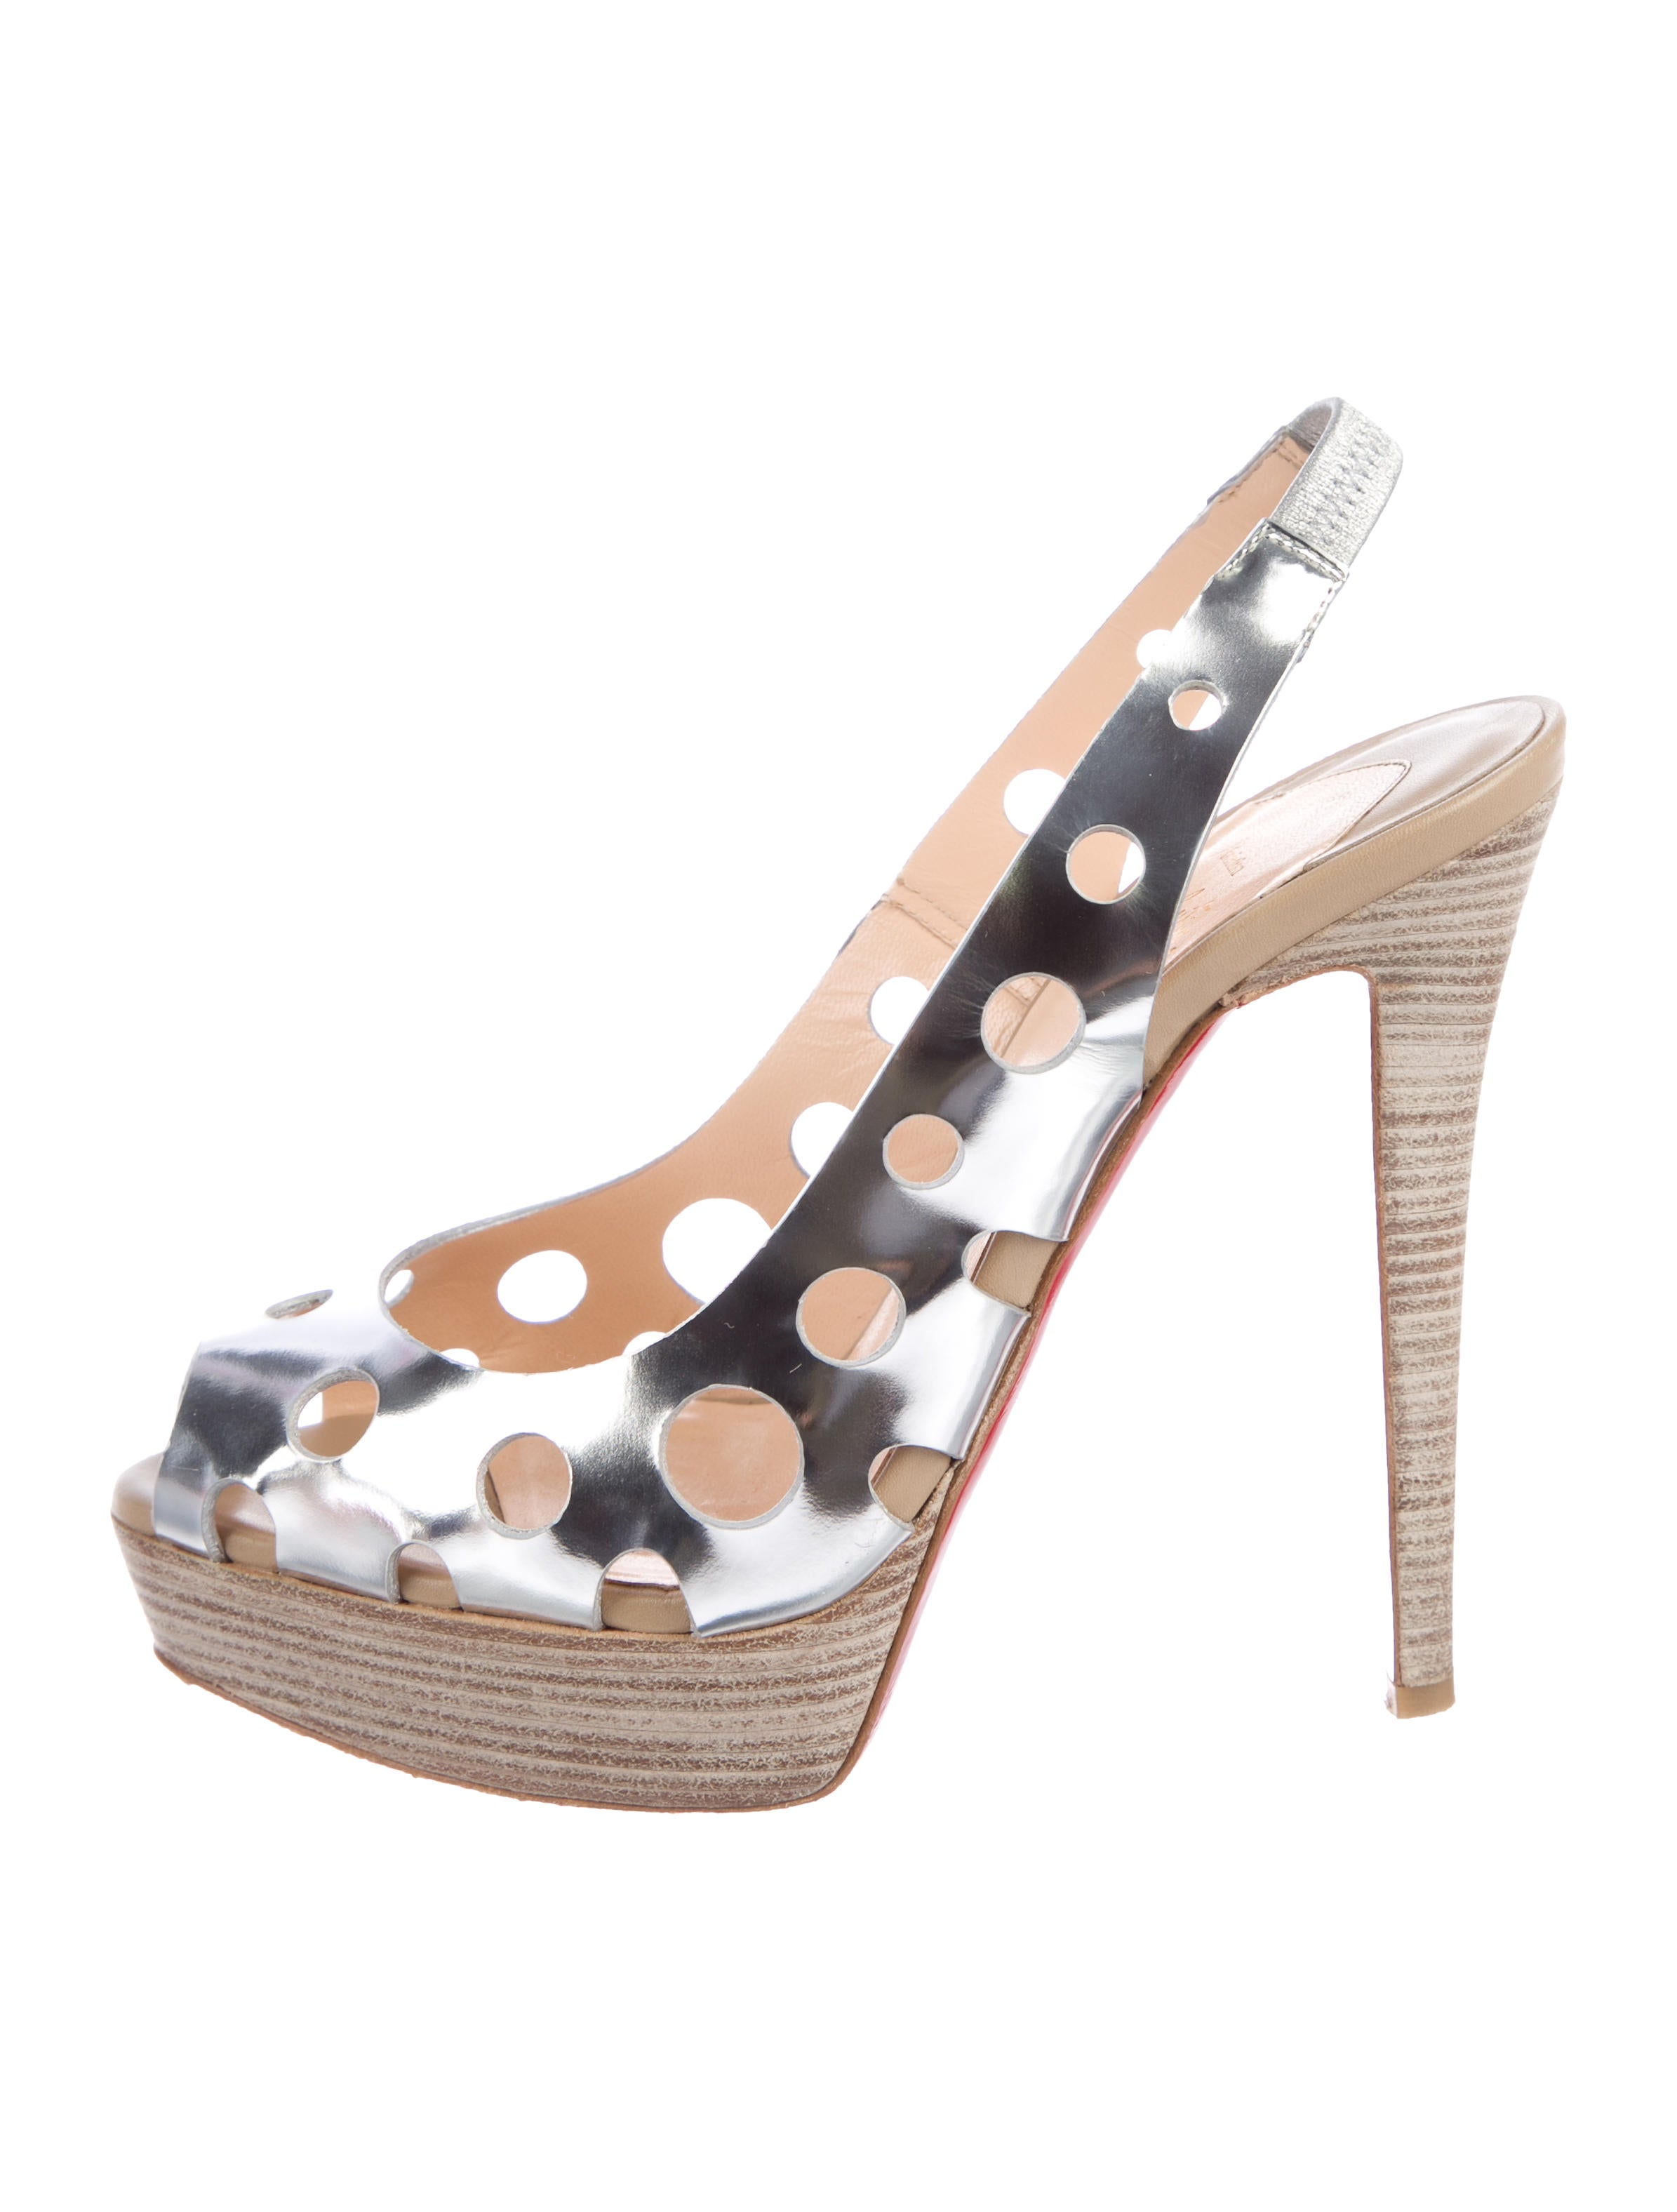 Christian Louboutin Ginza Metallic Sandals with paypal free shipping cheap the cheapest mpzrHvBOl